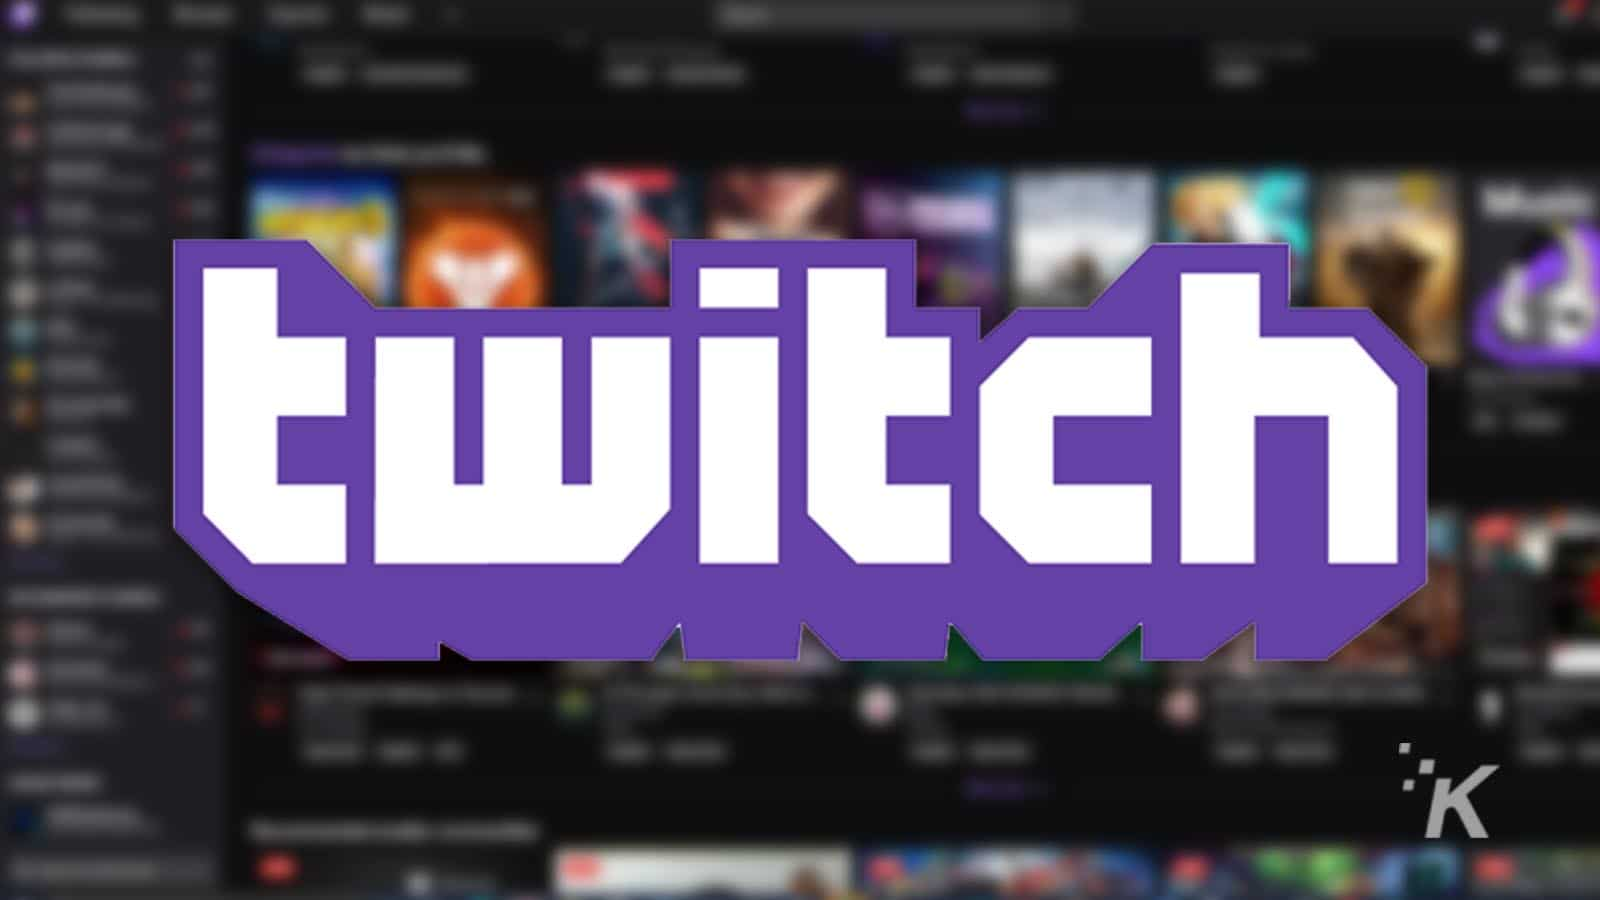 twitch logo with blurred background